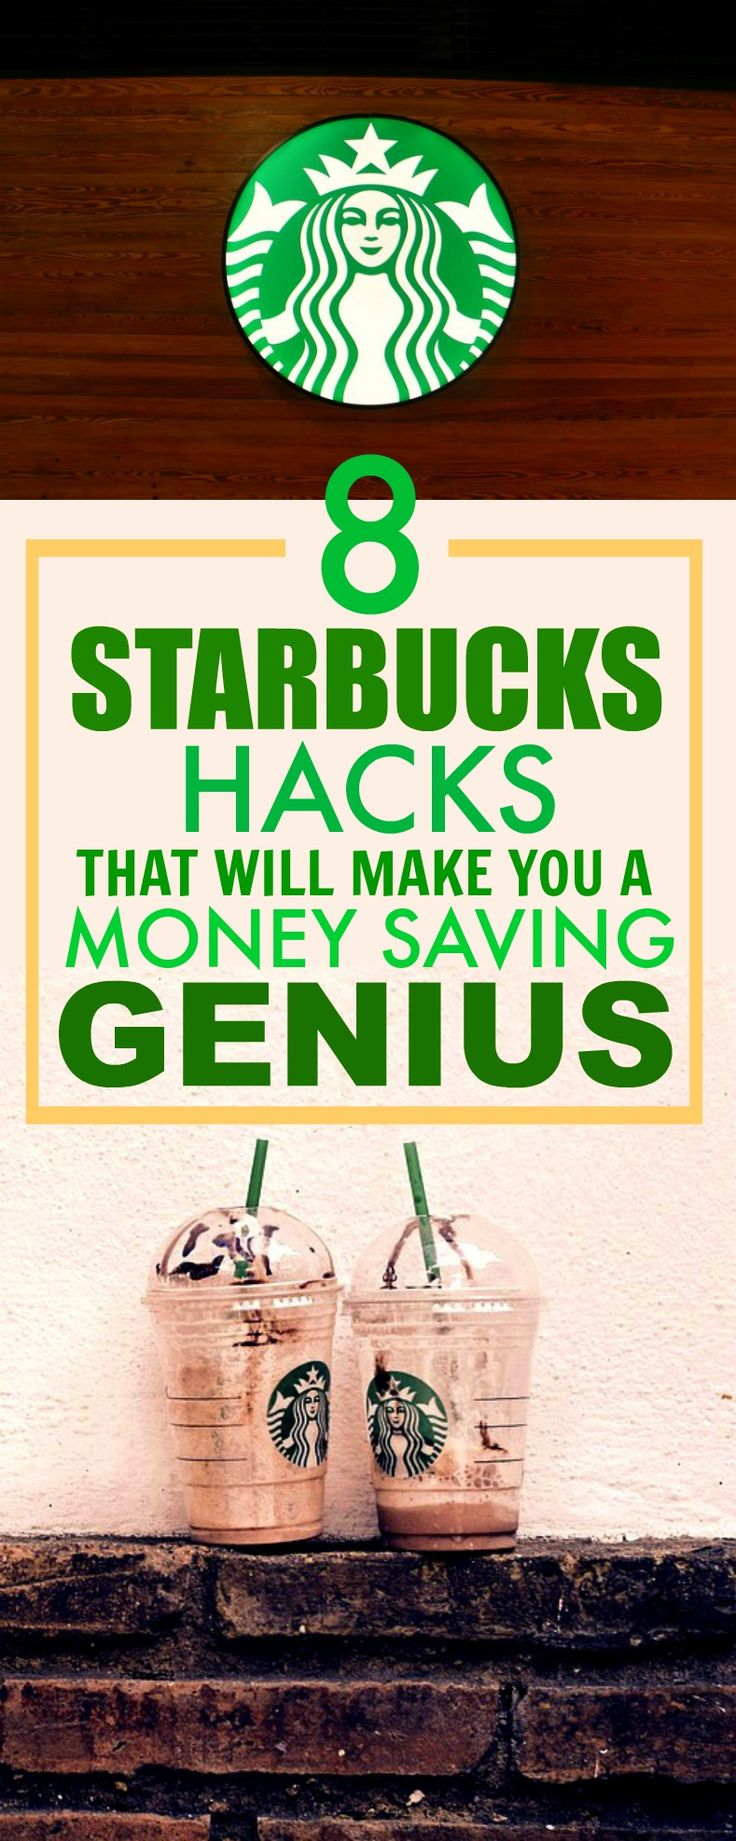 These 8 money saving hacks and tips for Starbucks are THE BEST! I've already…